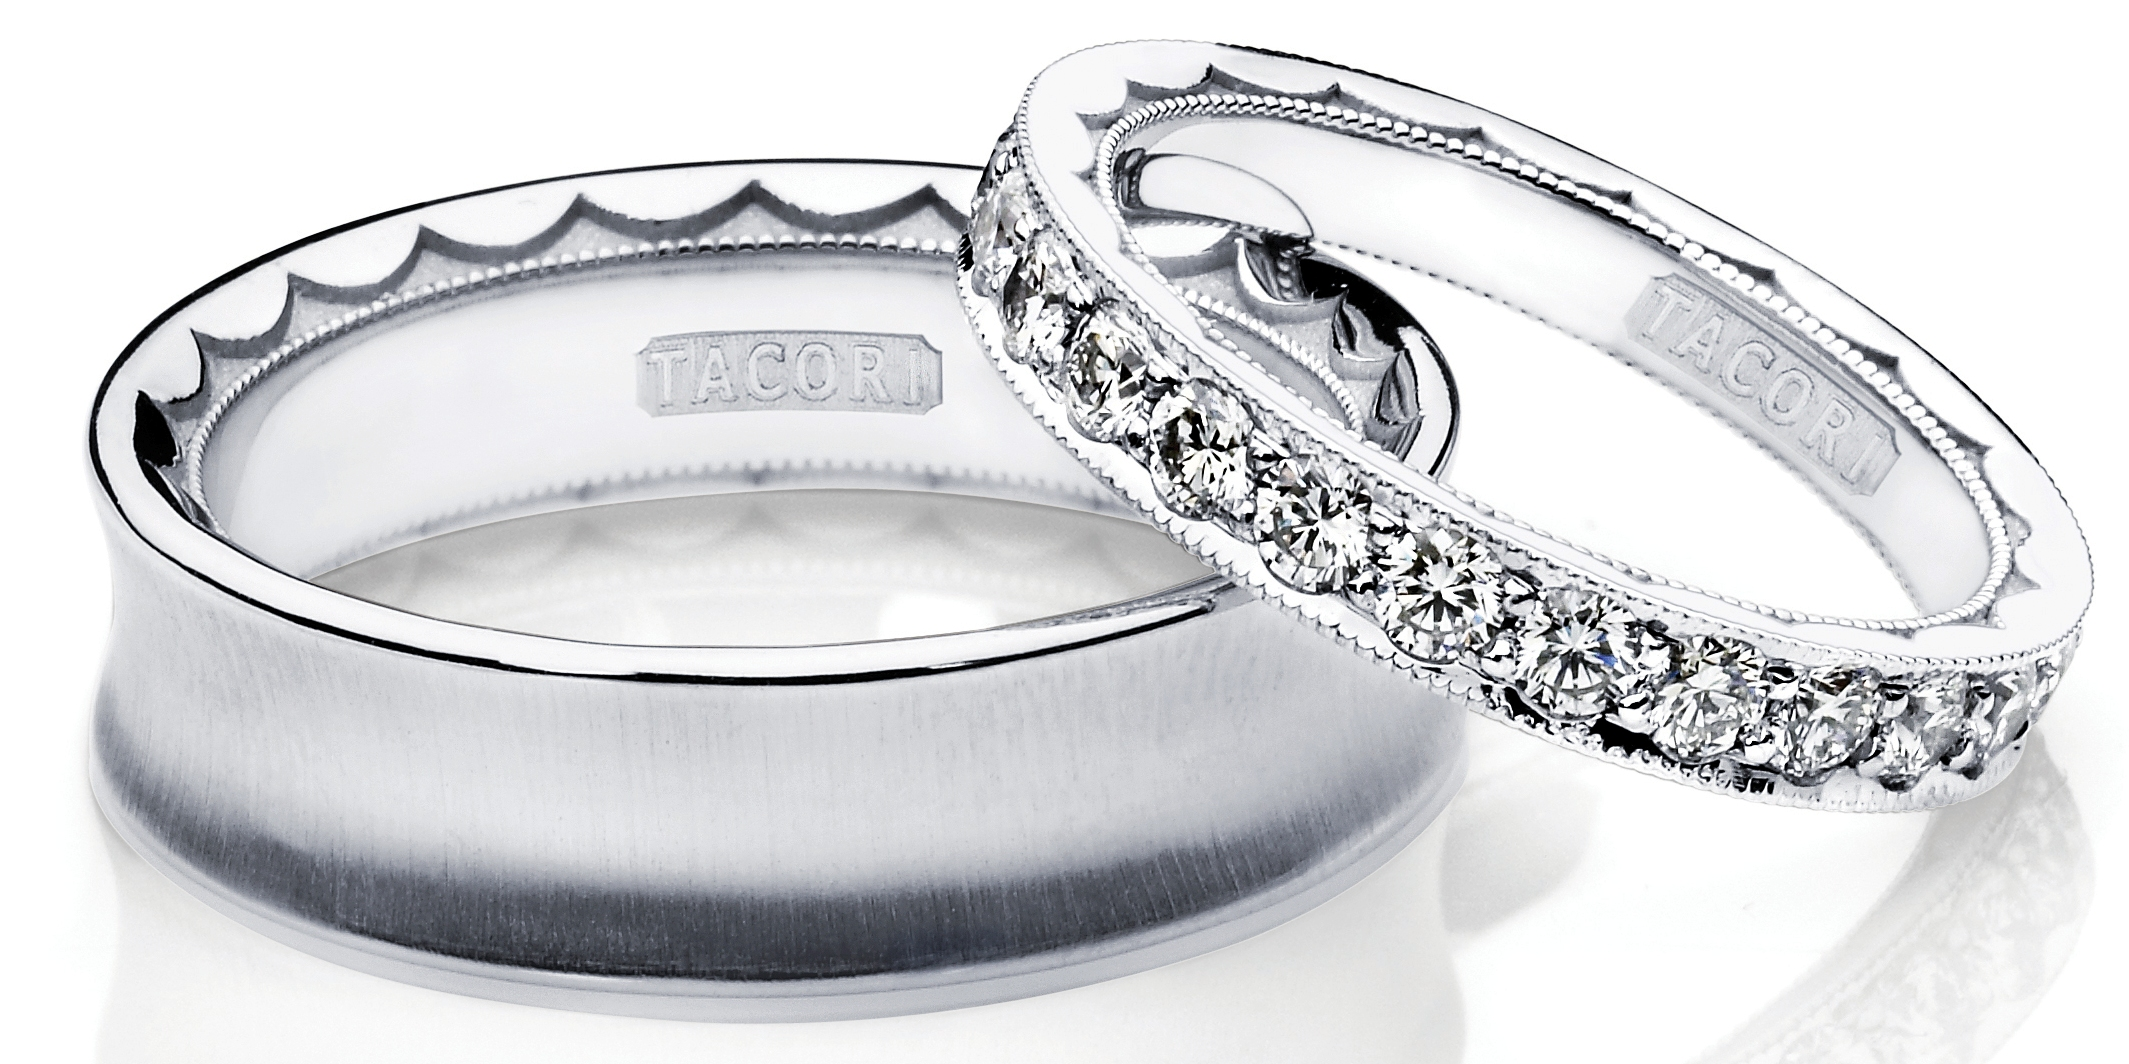 Tacori His and Hers Bands